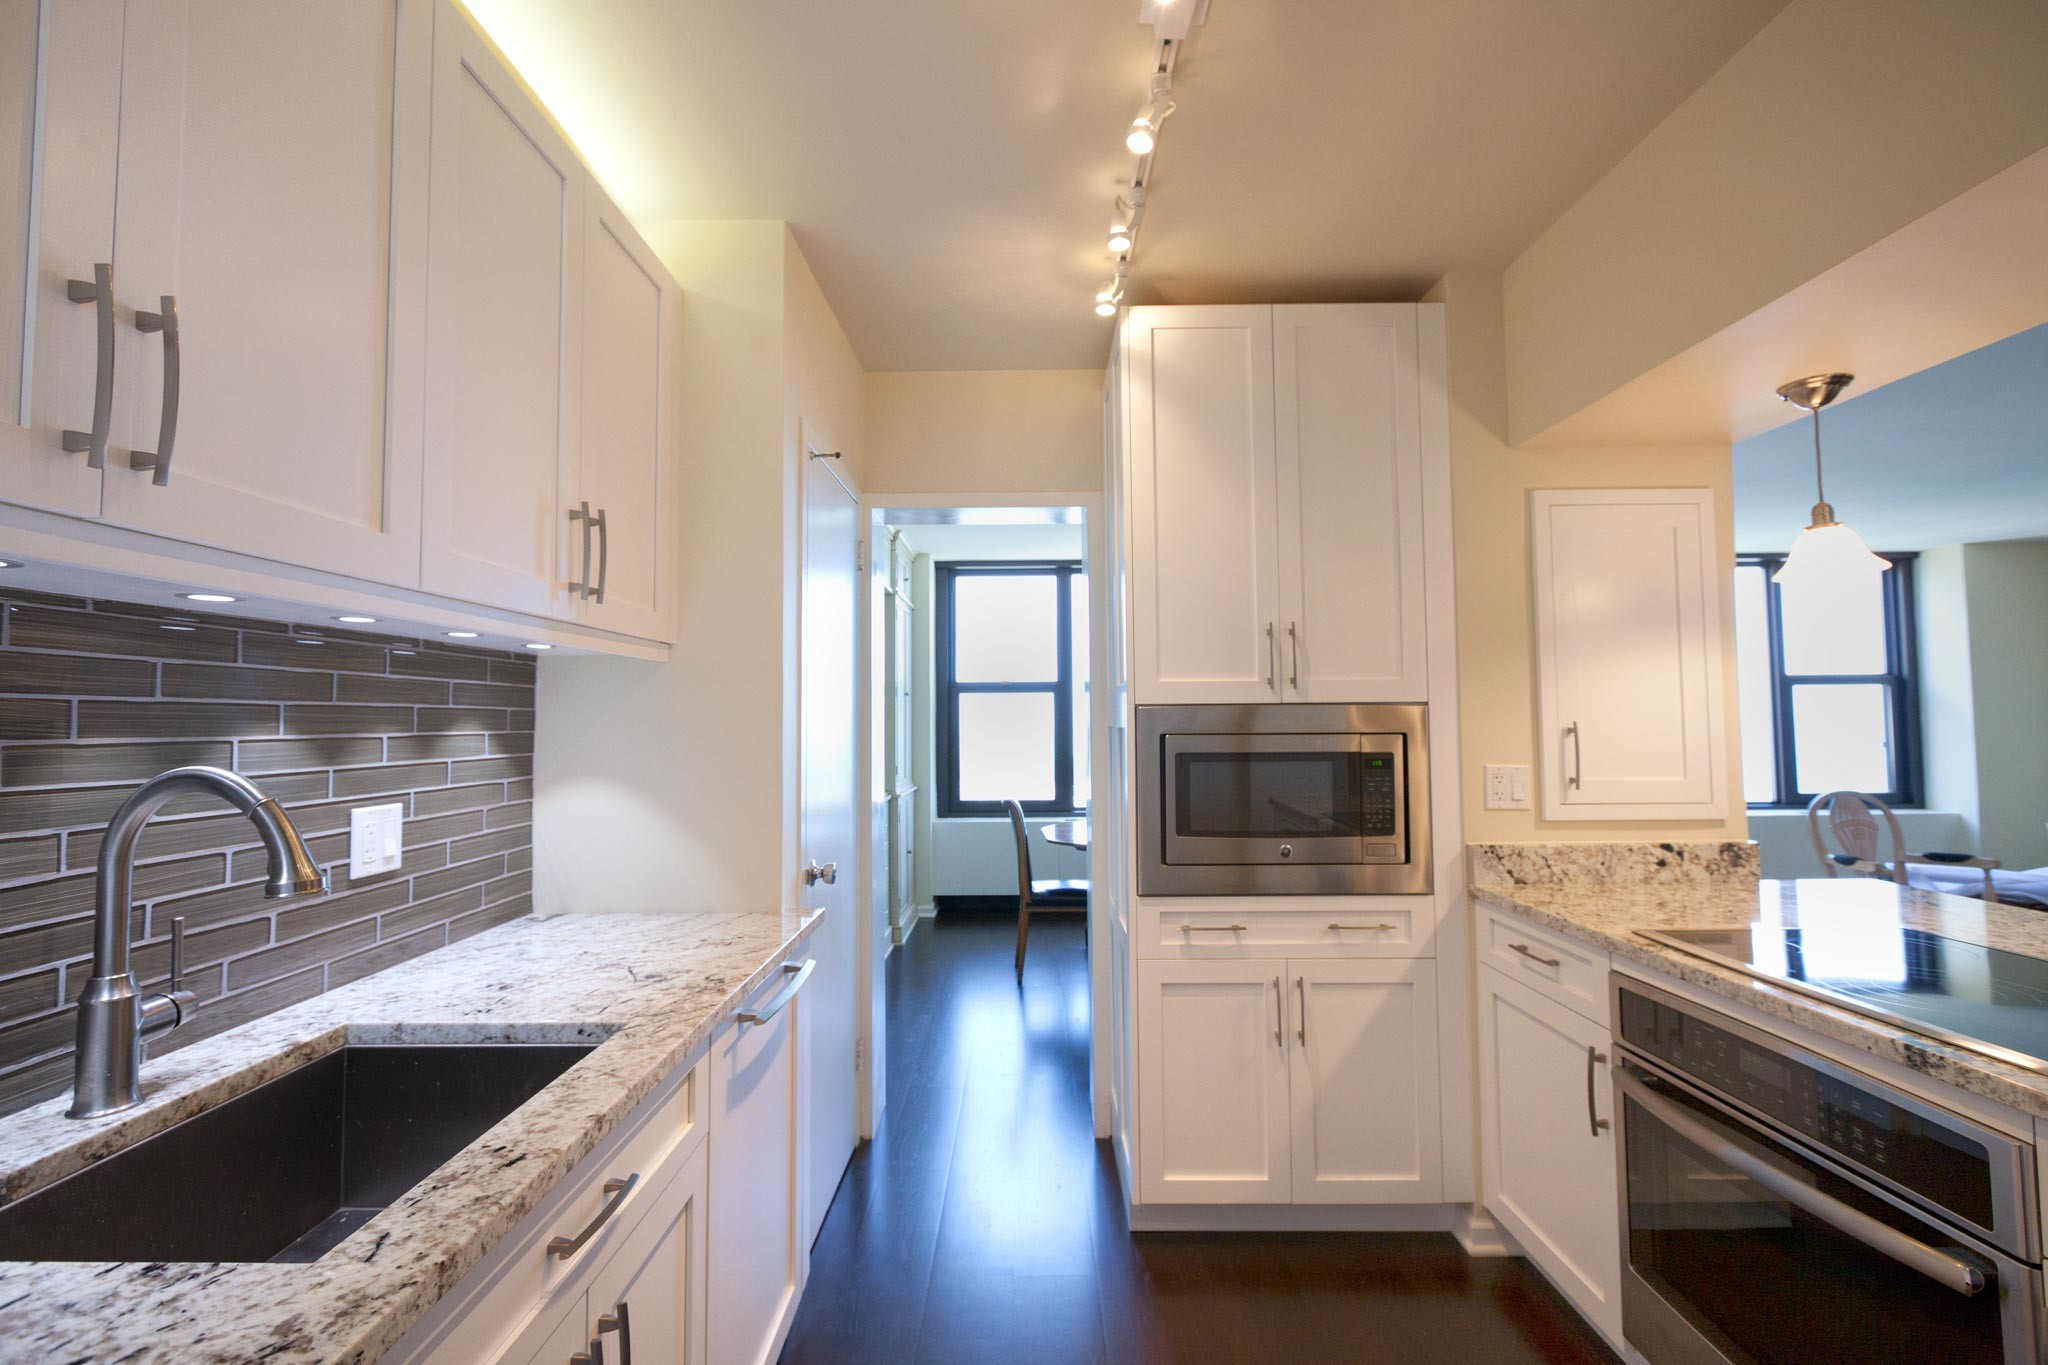 Kitchen Design Companies Chicago Chicago Lakefront Kitchen Remodeling Project Mr Floor